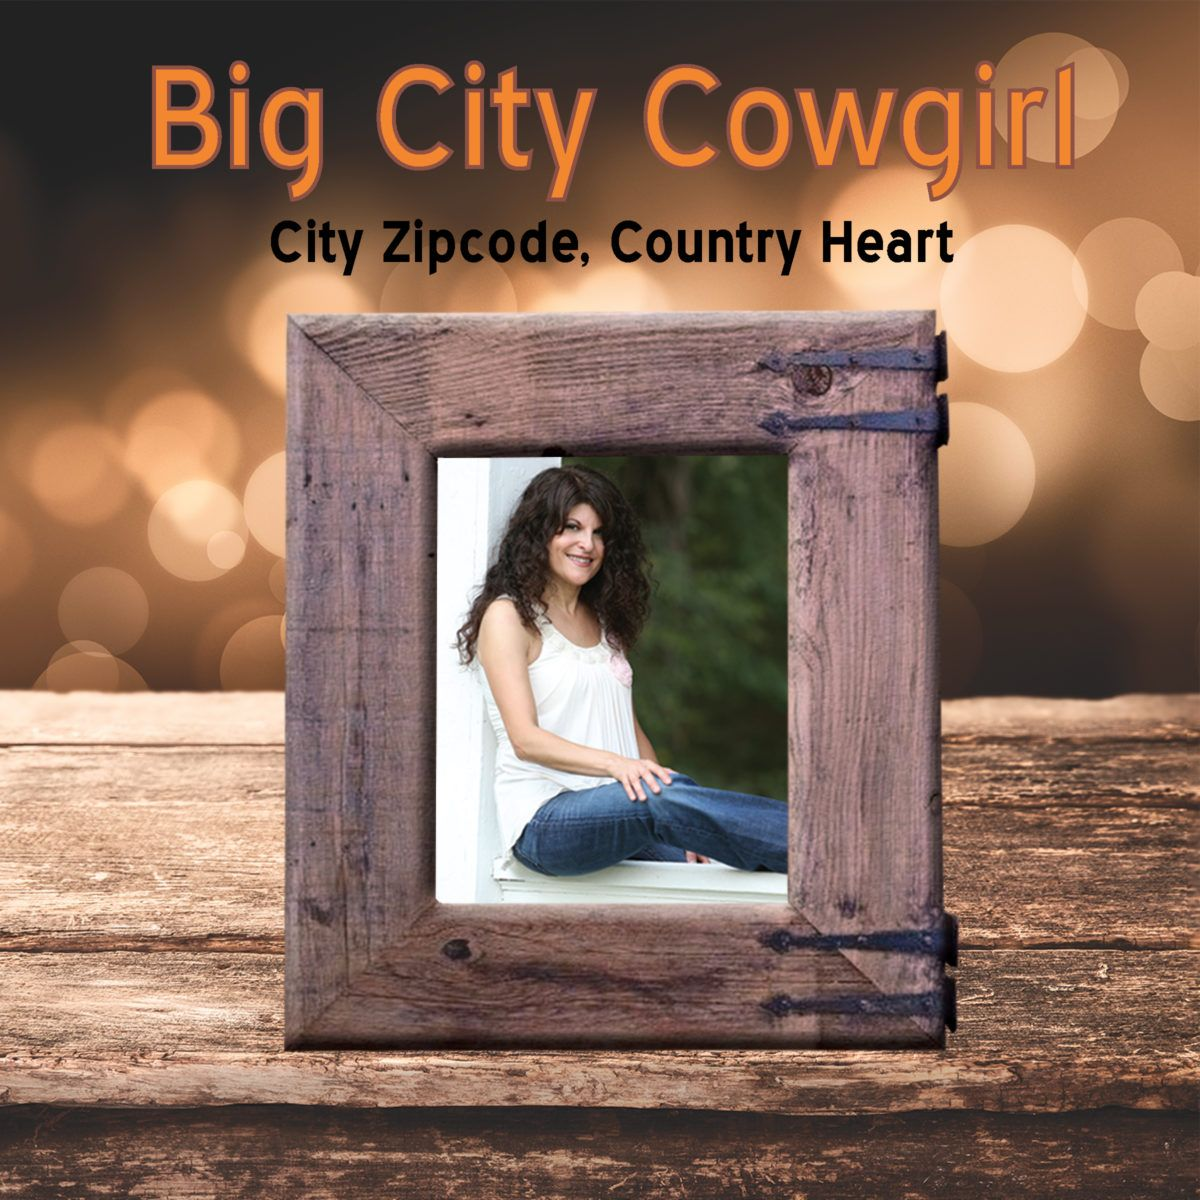 Big City Cowgirl's First EP CITY ZIPCODE, COUNTRY HEART